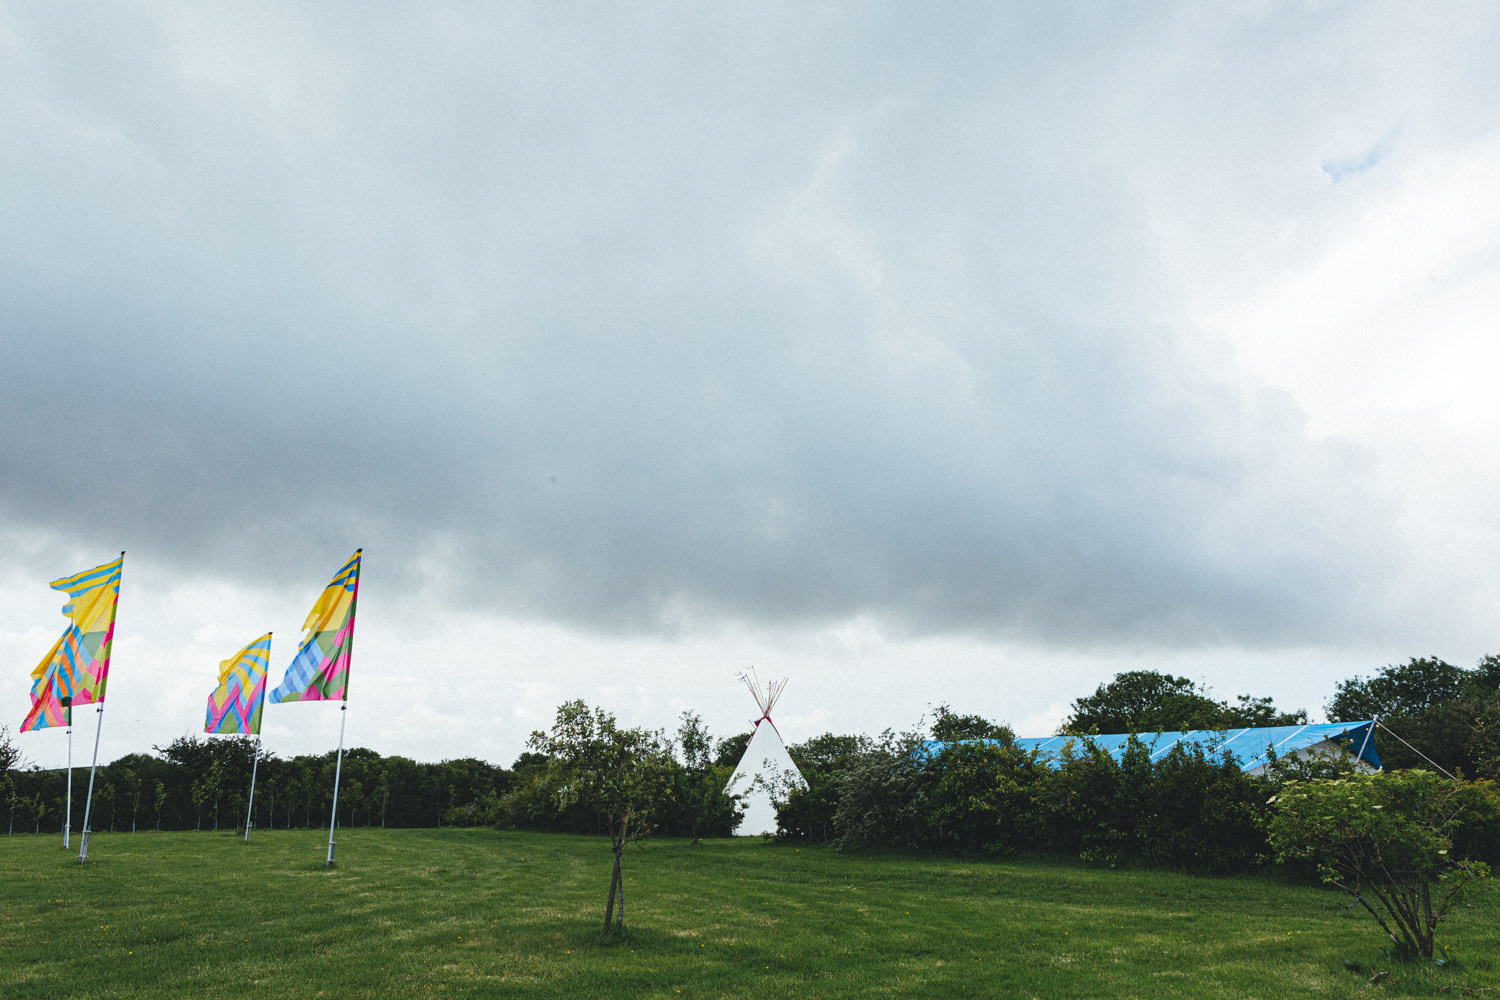 View of tipi and flags. Wedding venue. Cornish Tipi Wedding Photographer. Wedding Photography at Cornish Tipi Weddings on the coast of North Cornwall. Cornish Tipi Wedding is set in a wooded valley, surrounded by ancient woodlands